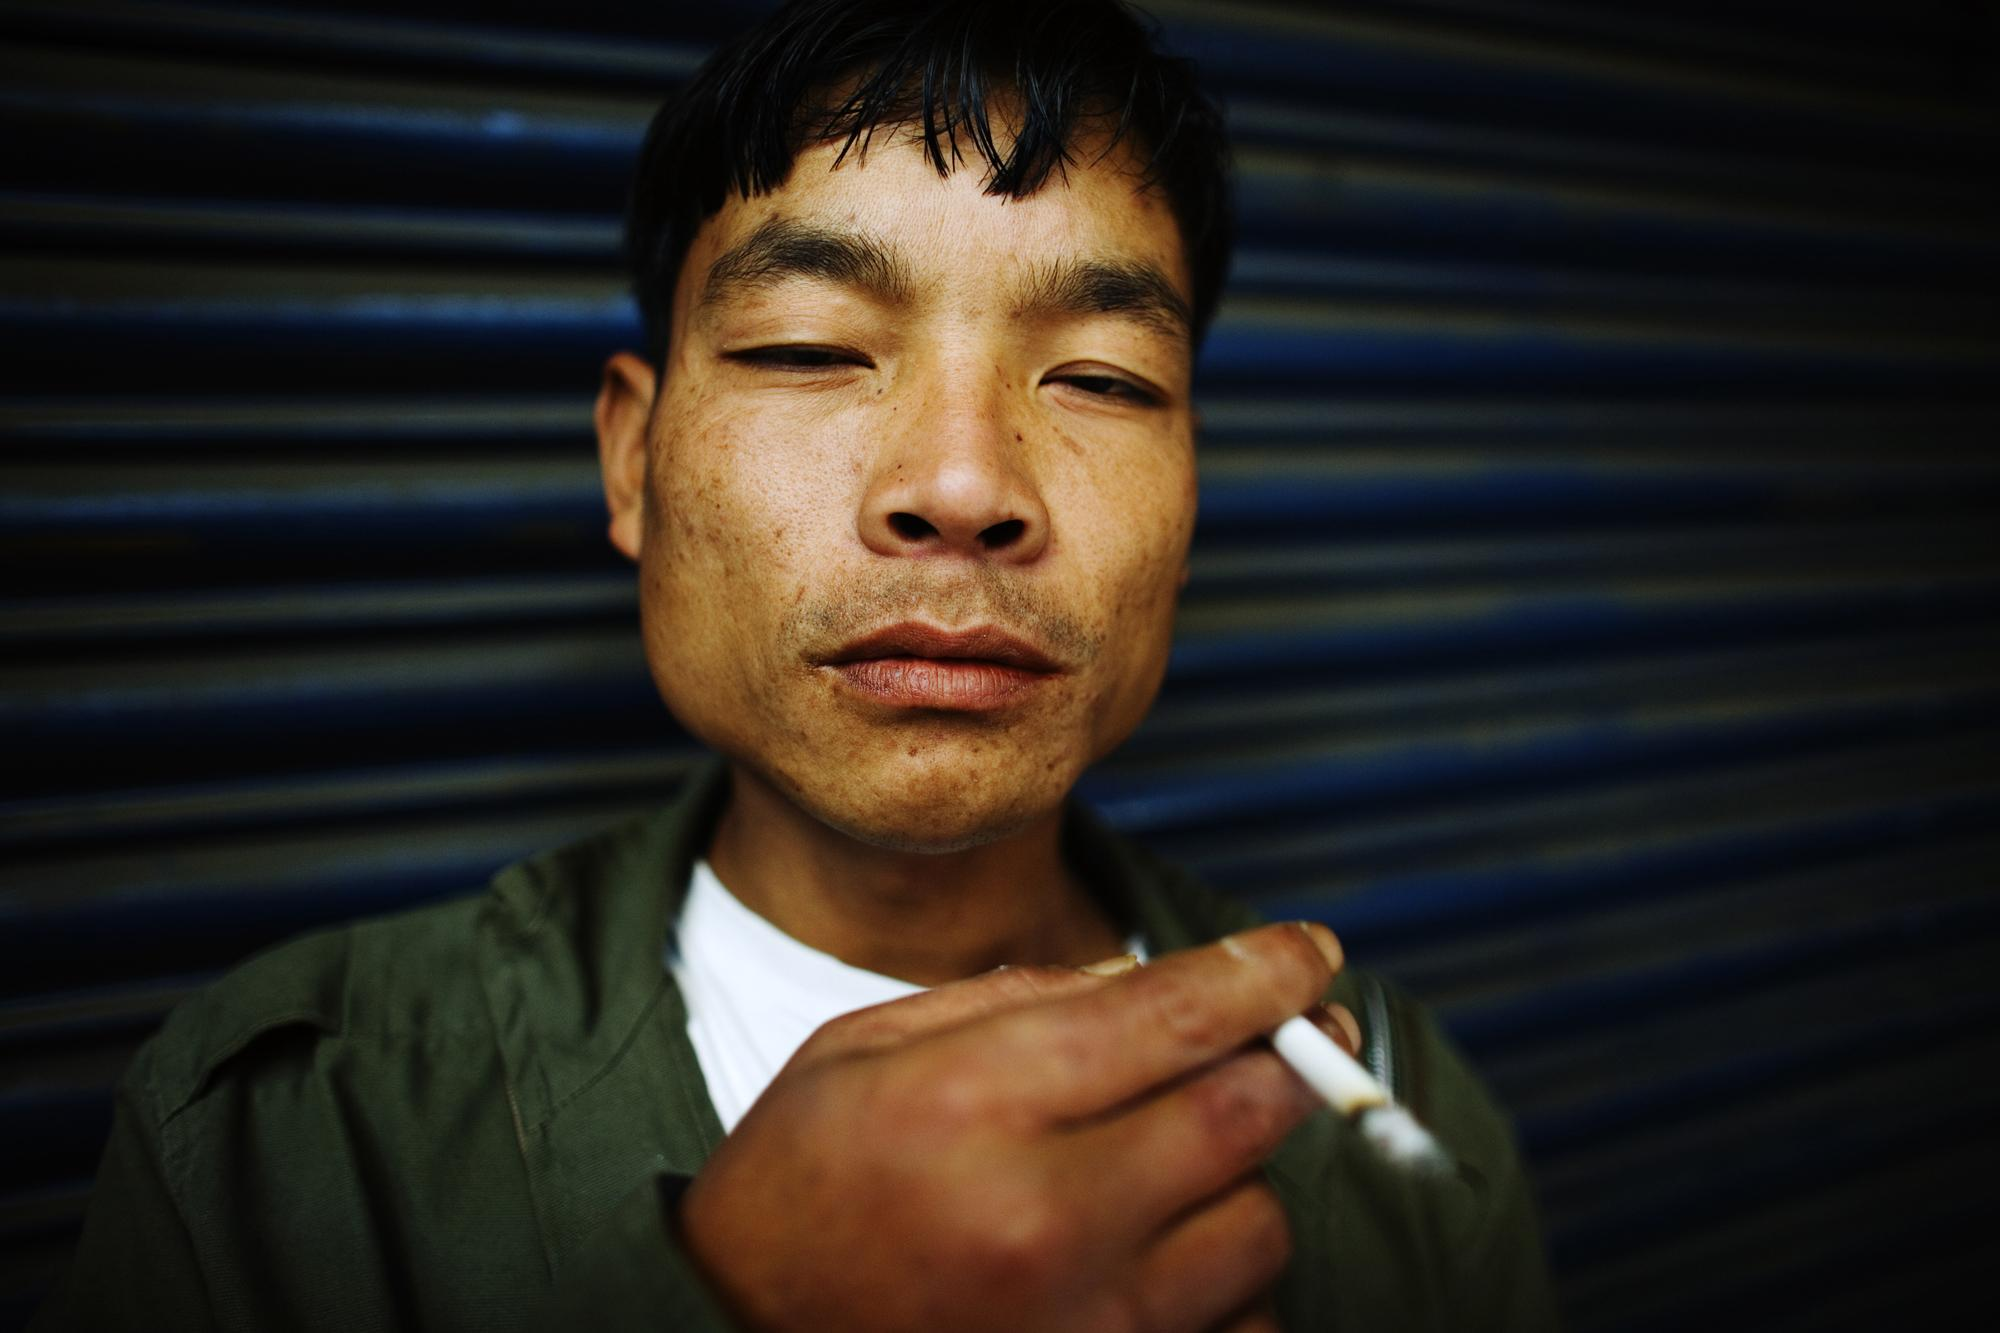 INDIA Shillong, Meghalaya A portrait of a recovering drug addict at the NEW HOPE drop-in centre. Here, ex drug addicts recover from their heroin and alcohol addictions.